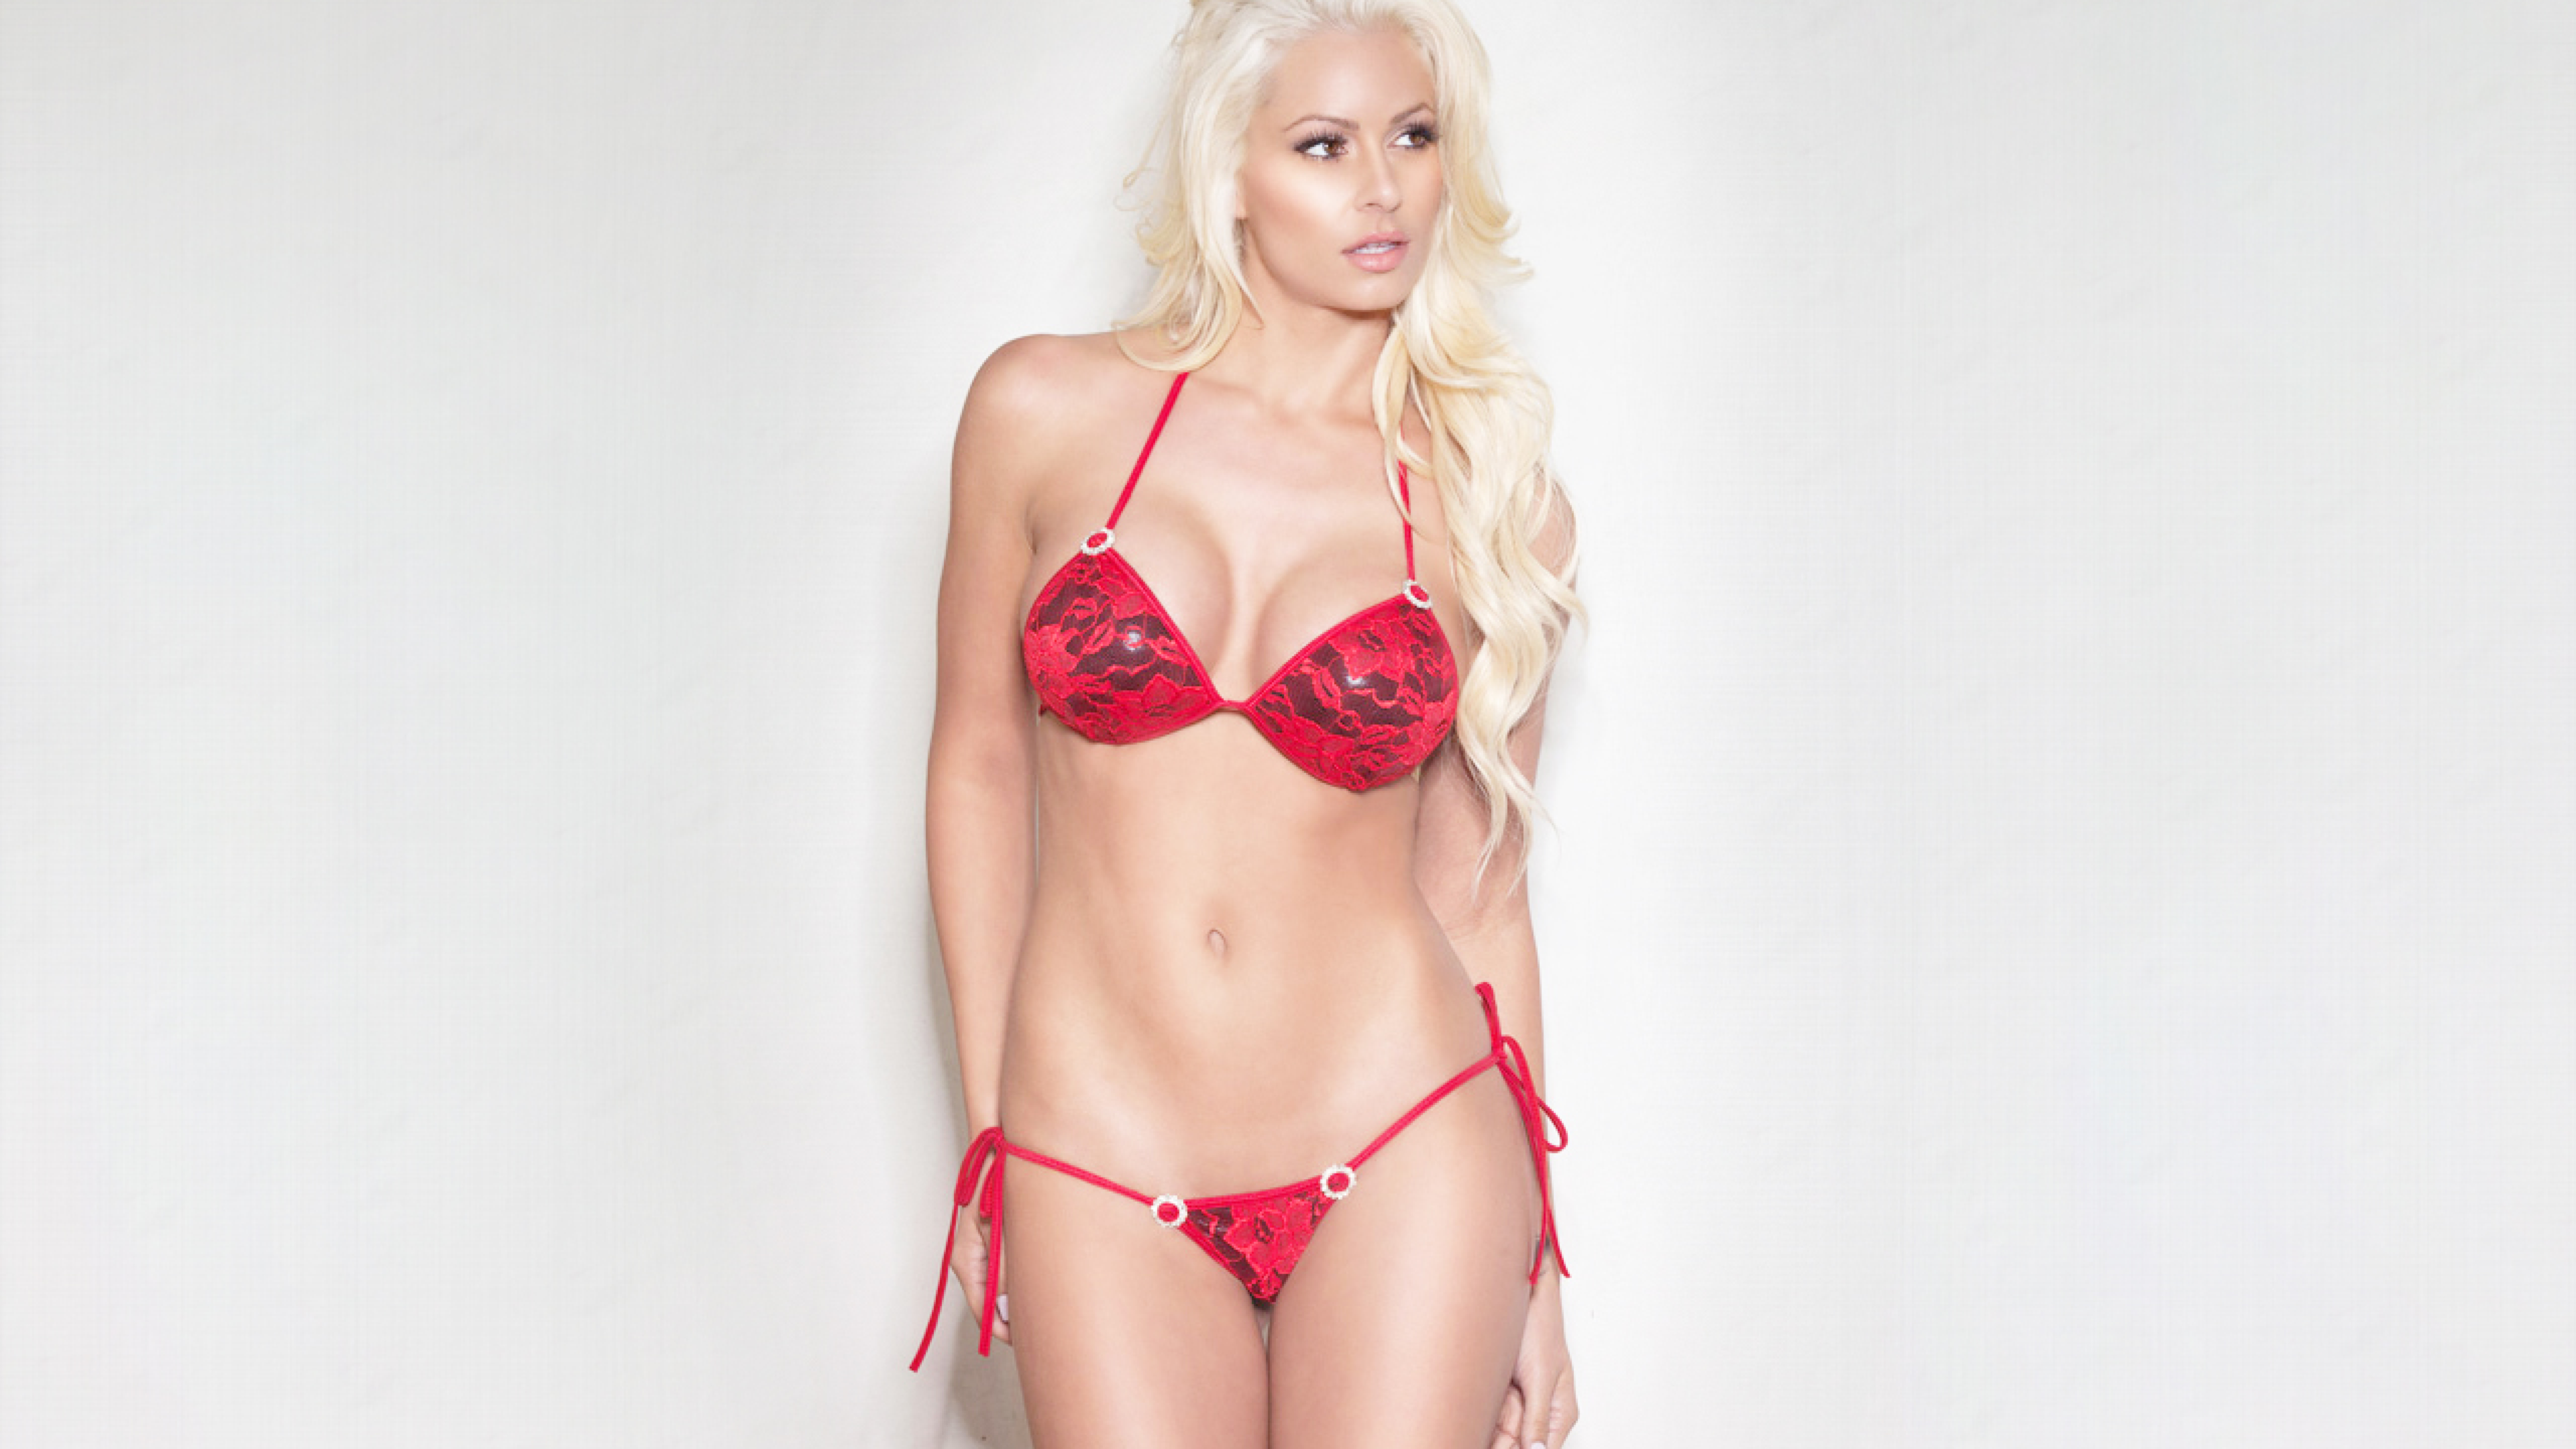 Wwe Hot Maryse In Bikini, Hd Wallpaper-2849